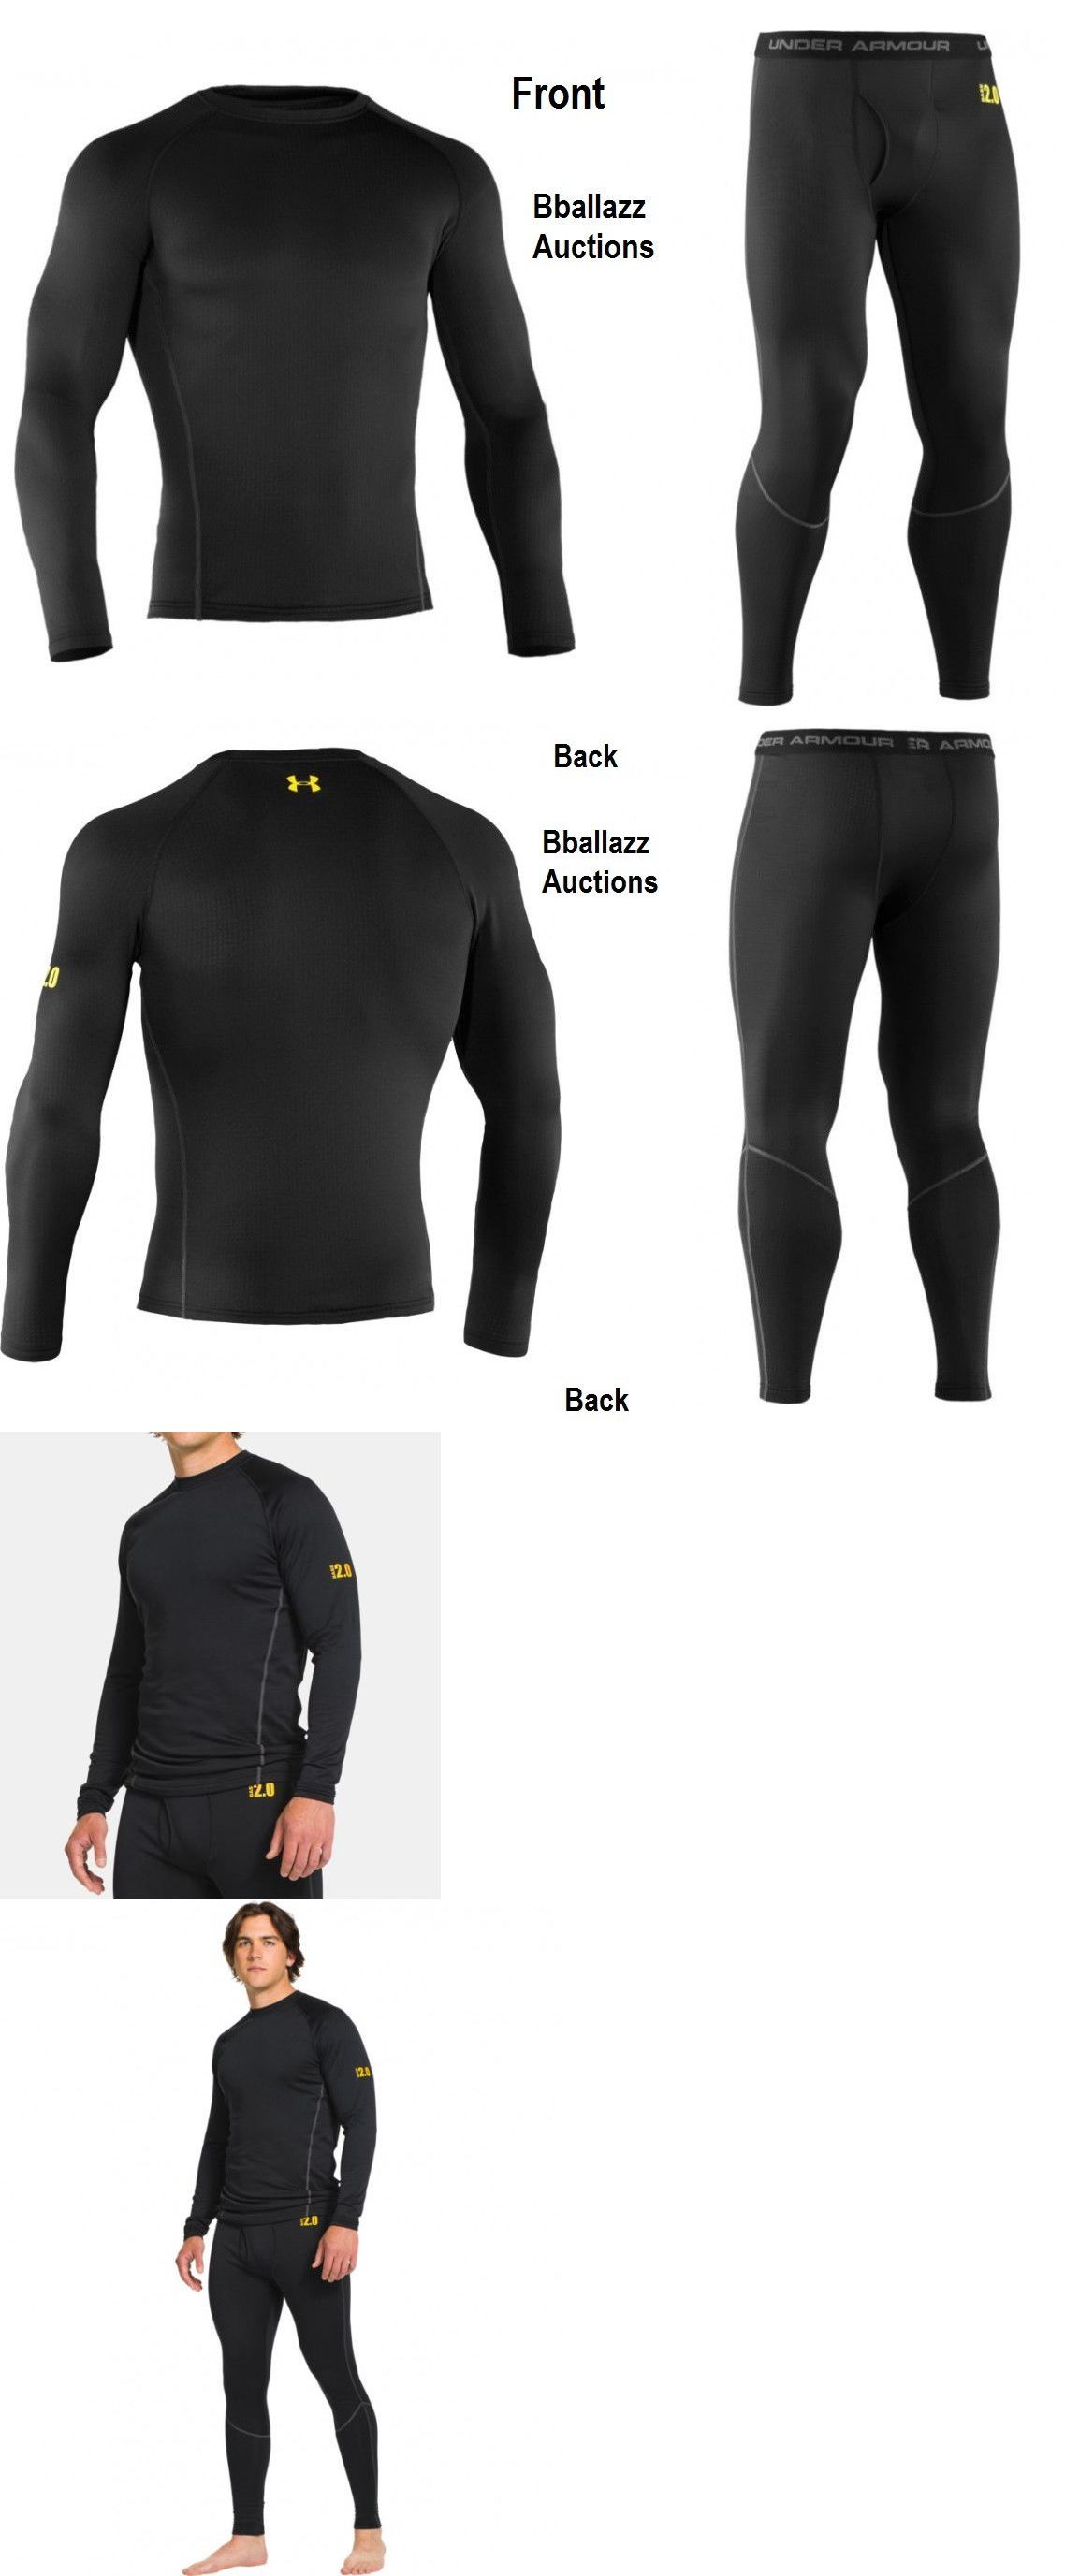 da179507ee69 Base Layers 62171  Men S Under Armour Ua Base 2.0 Crew Top Or Legging ~  Black Battleship - 001 -  BUY IT NOW ONLY   36.7 on  eBay  layers  under   armour ...